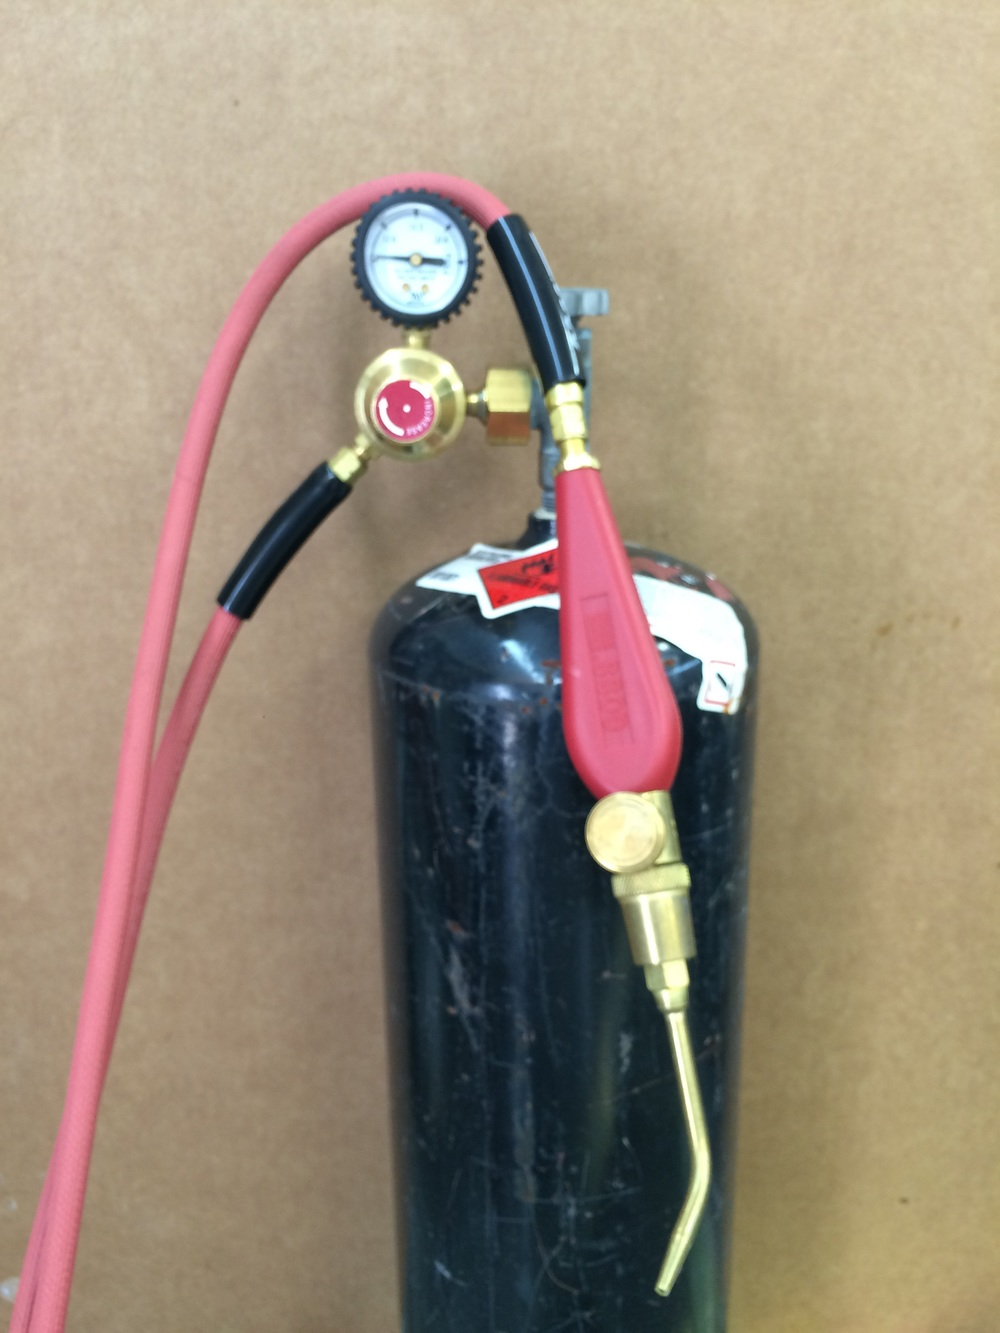 New acetylene torch and tank